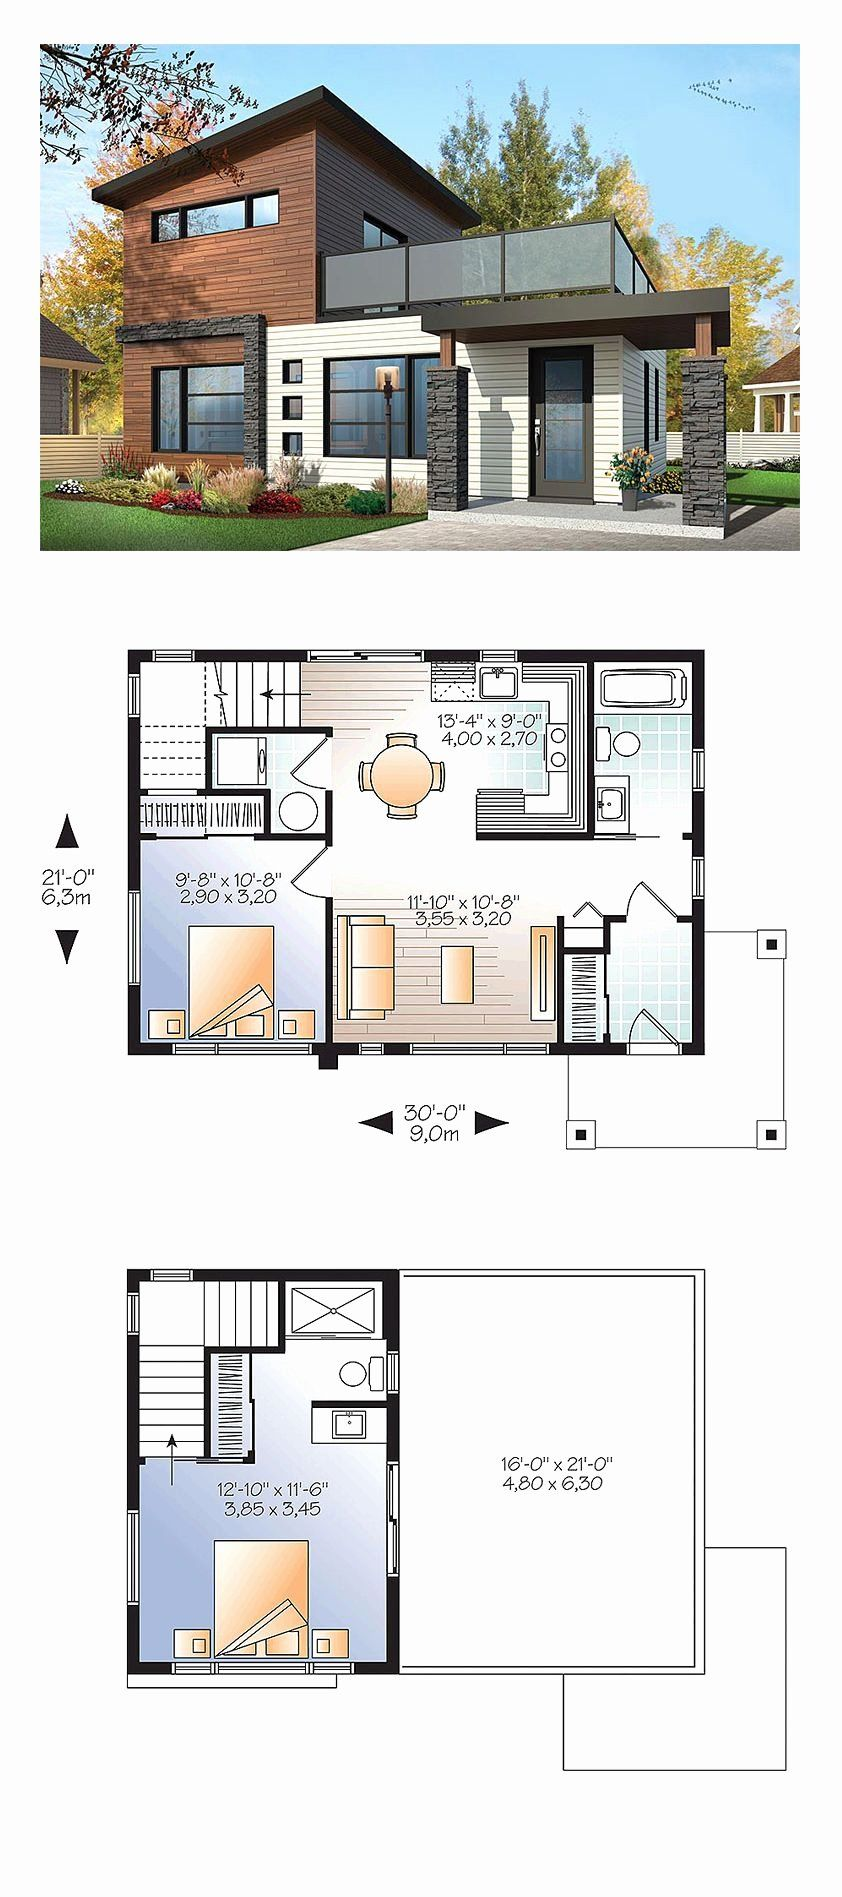 Sims 3 Modern House Ideas Awesome Small Home Design Plan 9 4 8 2m With 4 Bedrooms Untung Best In 2020 Modern House Floor Plans Sims 4 Modern House Modern House Plans